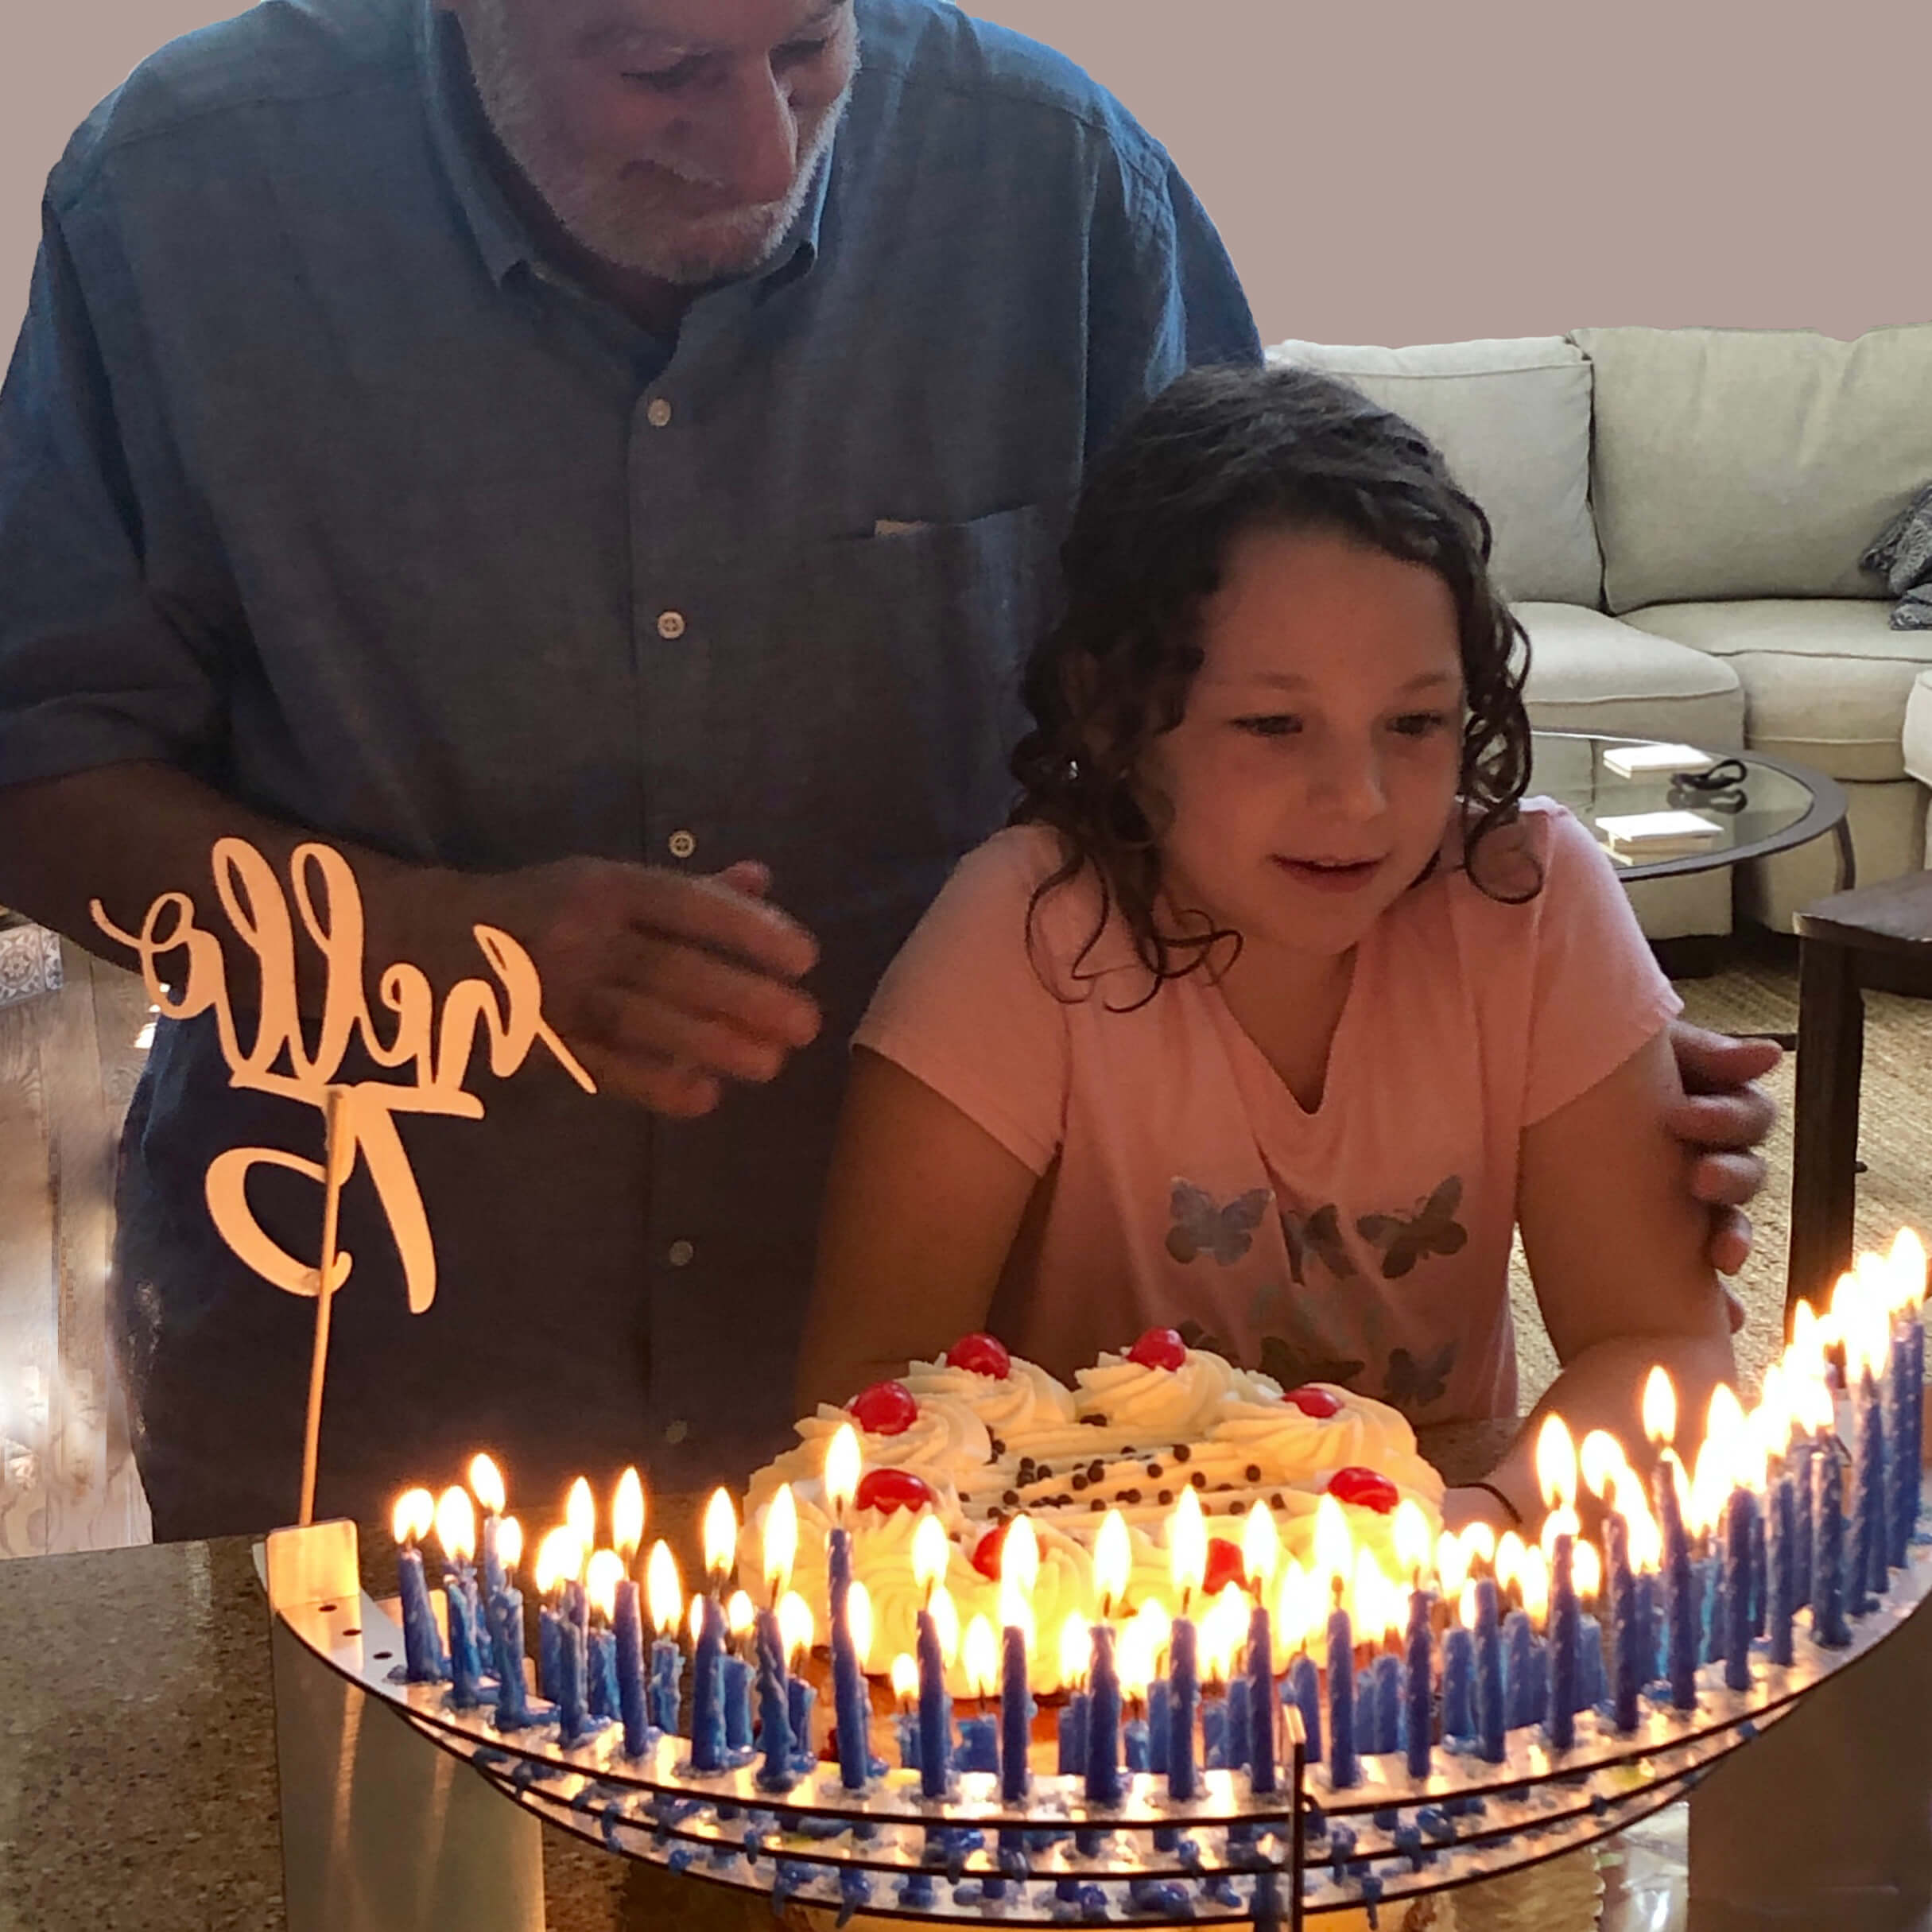 75th Birthday Party Decorations Grandfather & Granddaughter Blowing Out the Candles